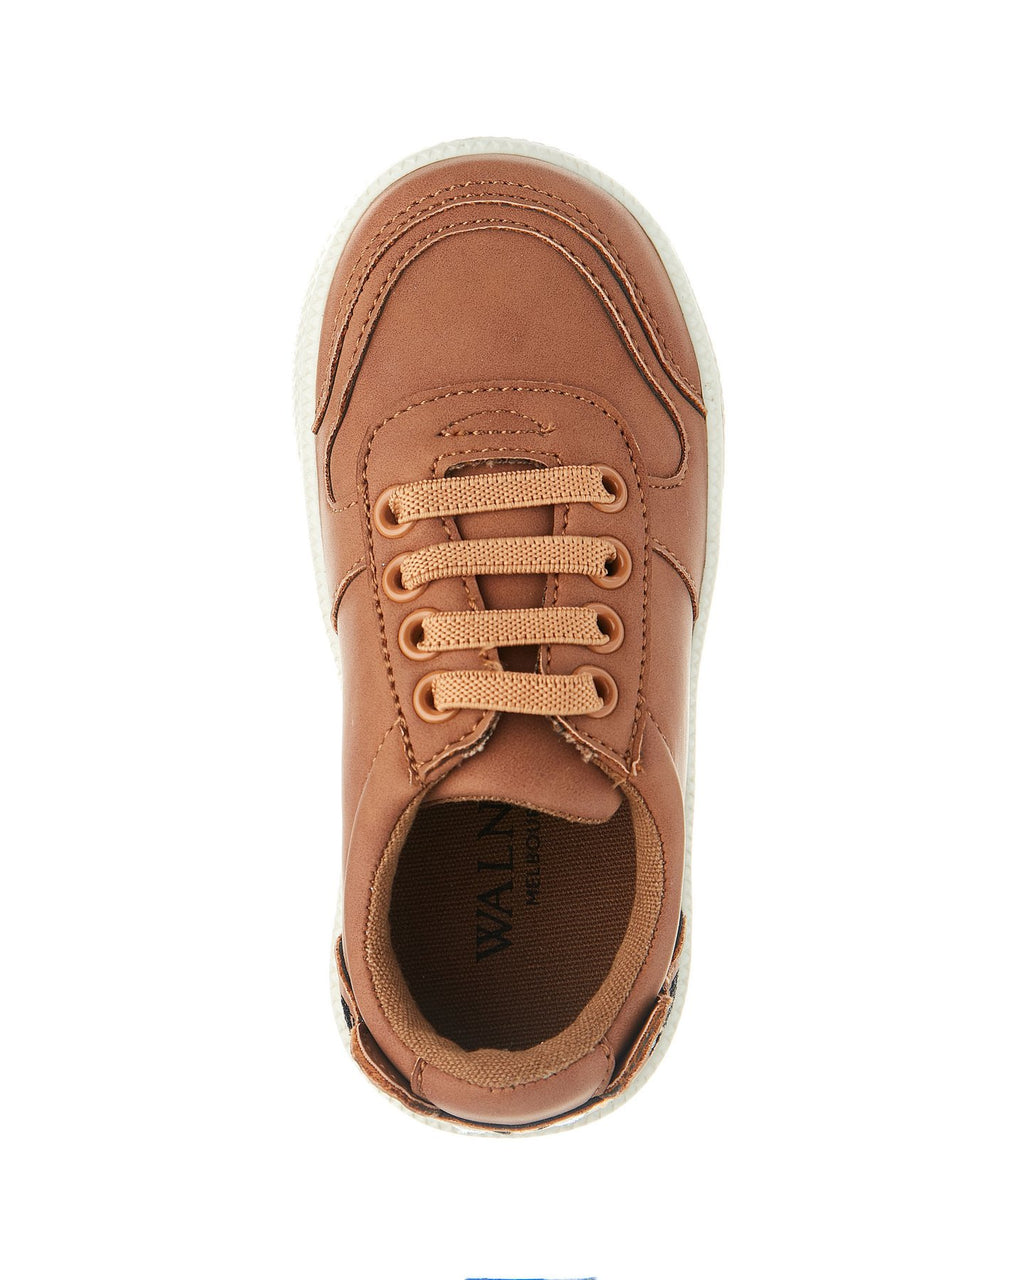 Sammy Sneaker - Tan - Walnut Melbourne